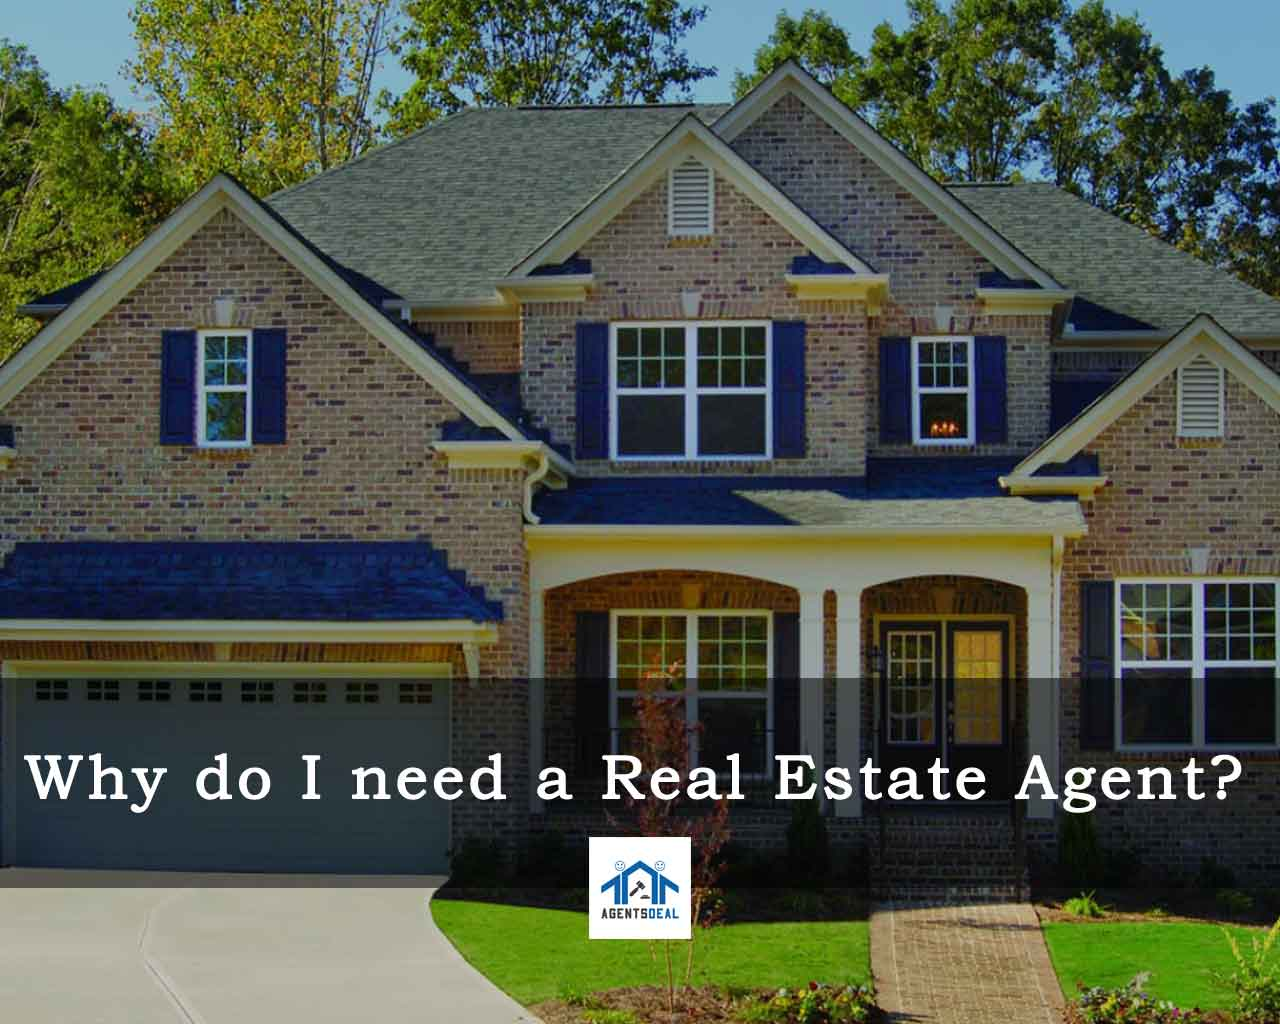 Can I buy a home without paying a Real Estate Agent Commission?